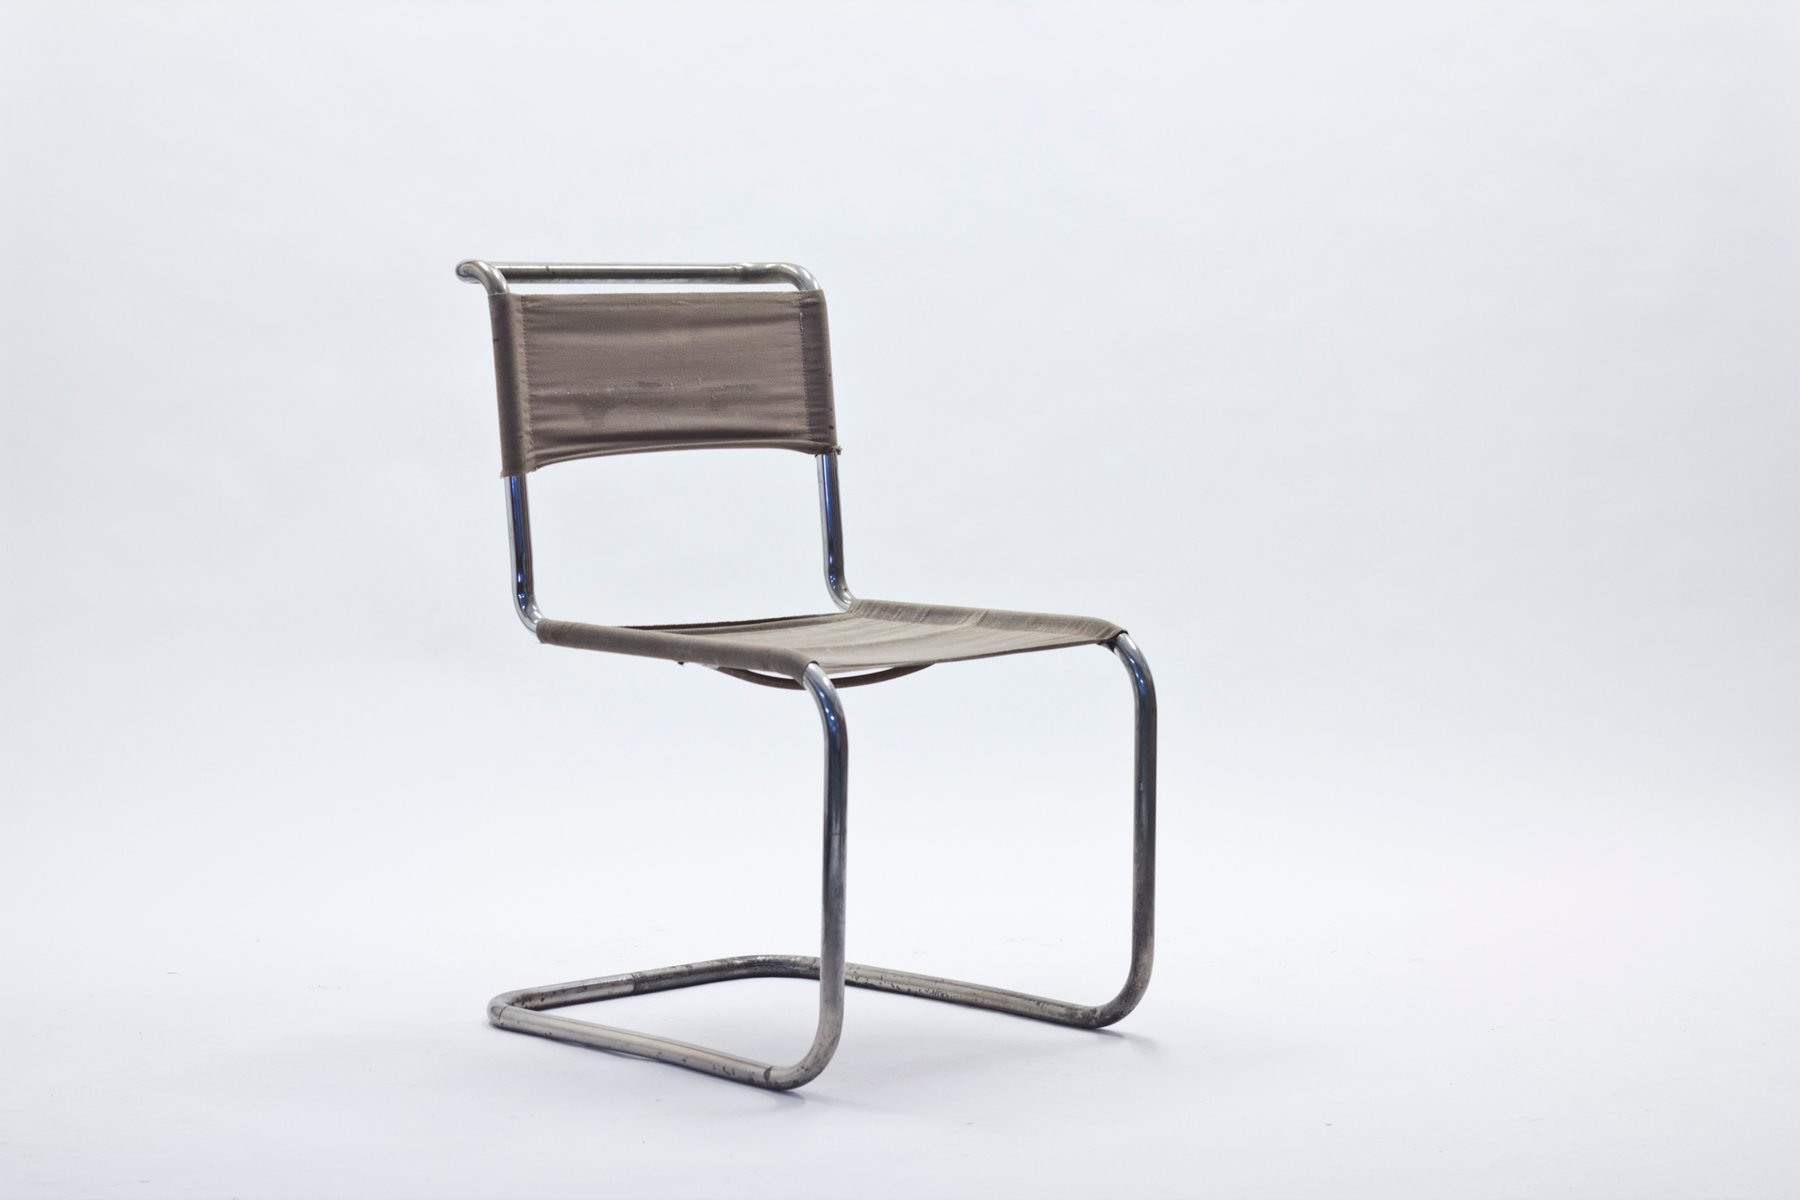 B33 Cantilevered Chair By Marcel Breuer U0026 Mart Stam For Thonet, 1930s